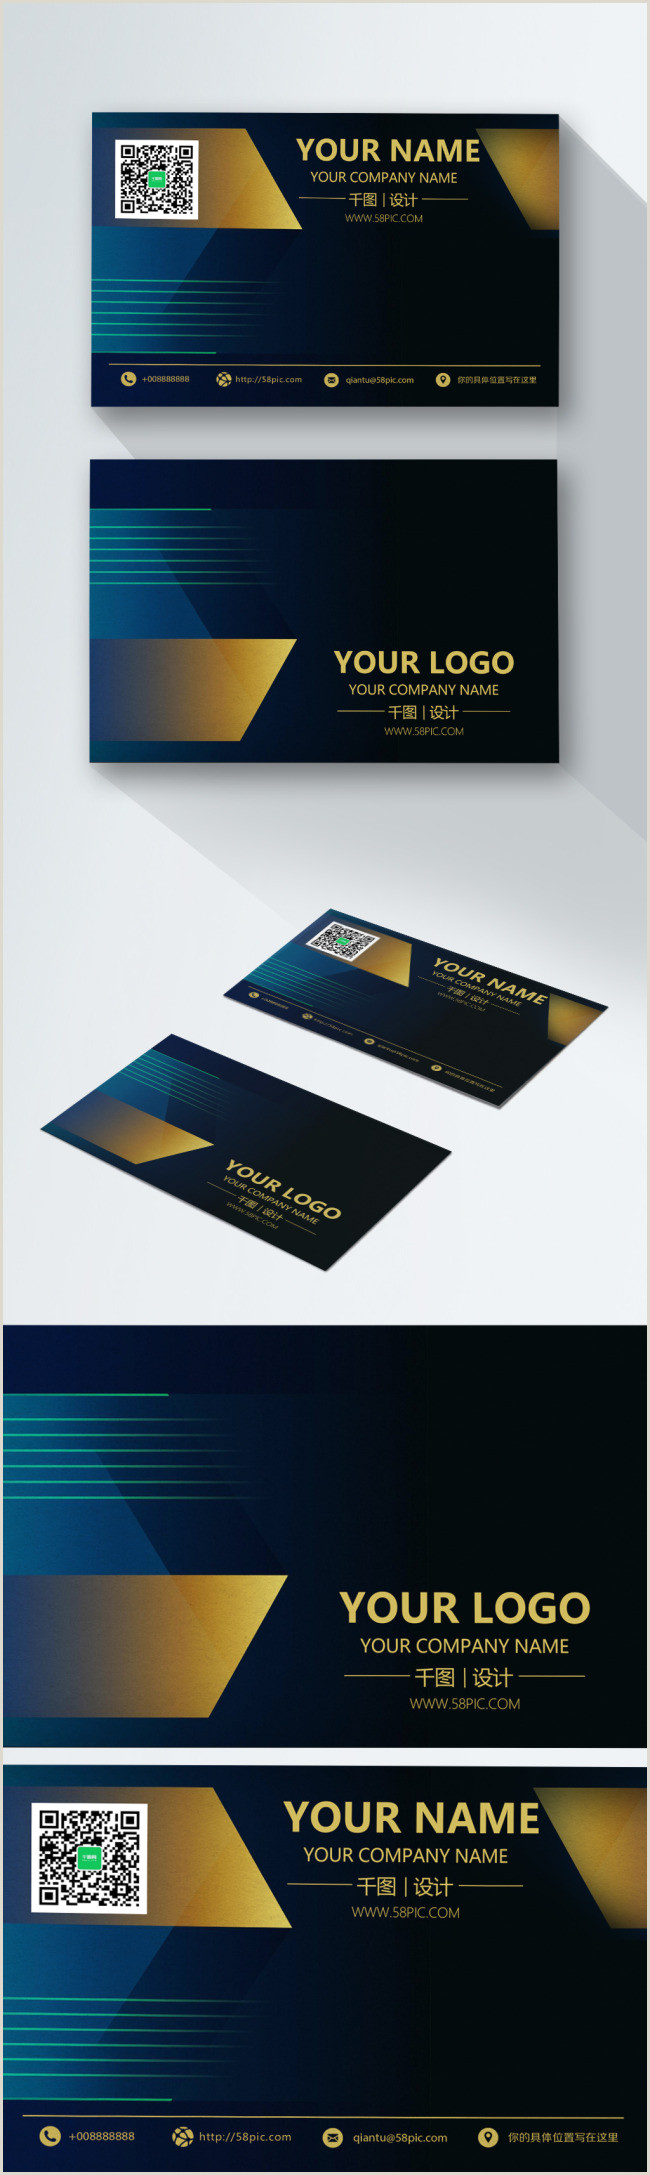 Black Business Card Background Black Business Card Design Template Image Picture Free